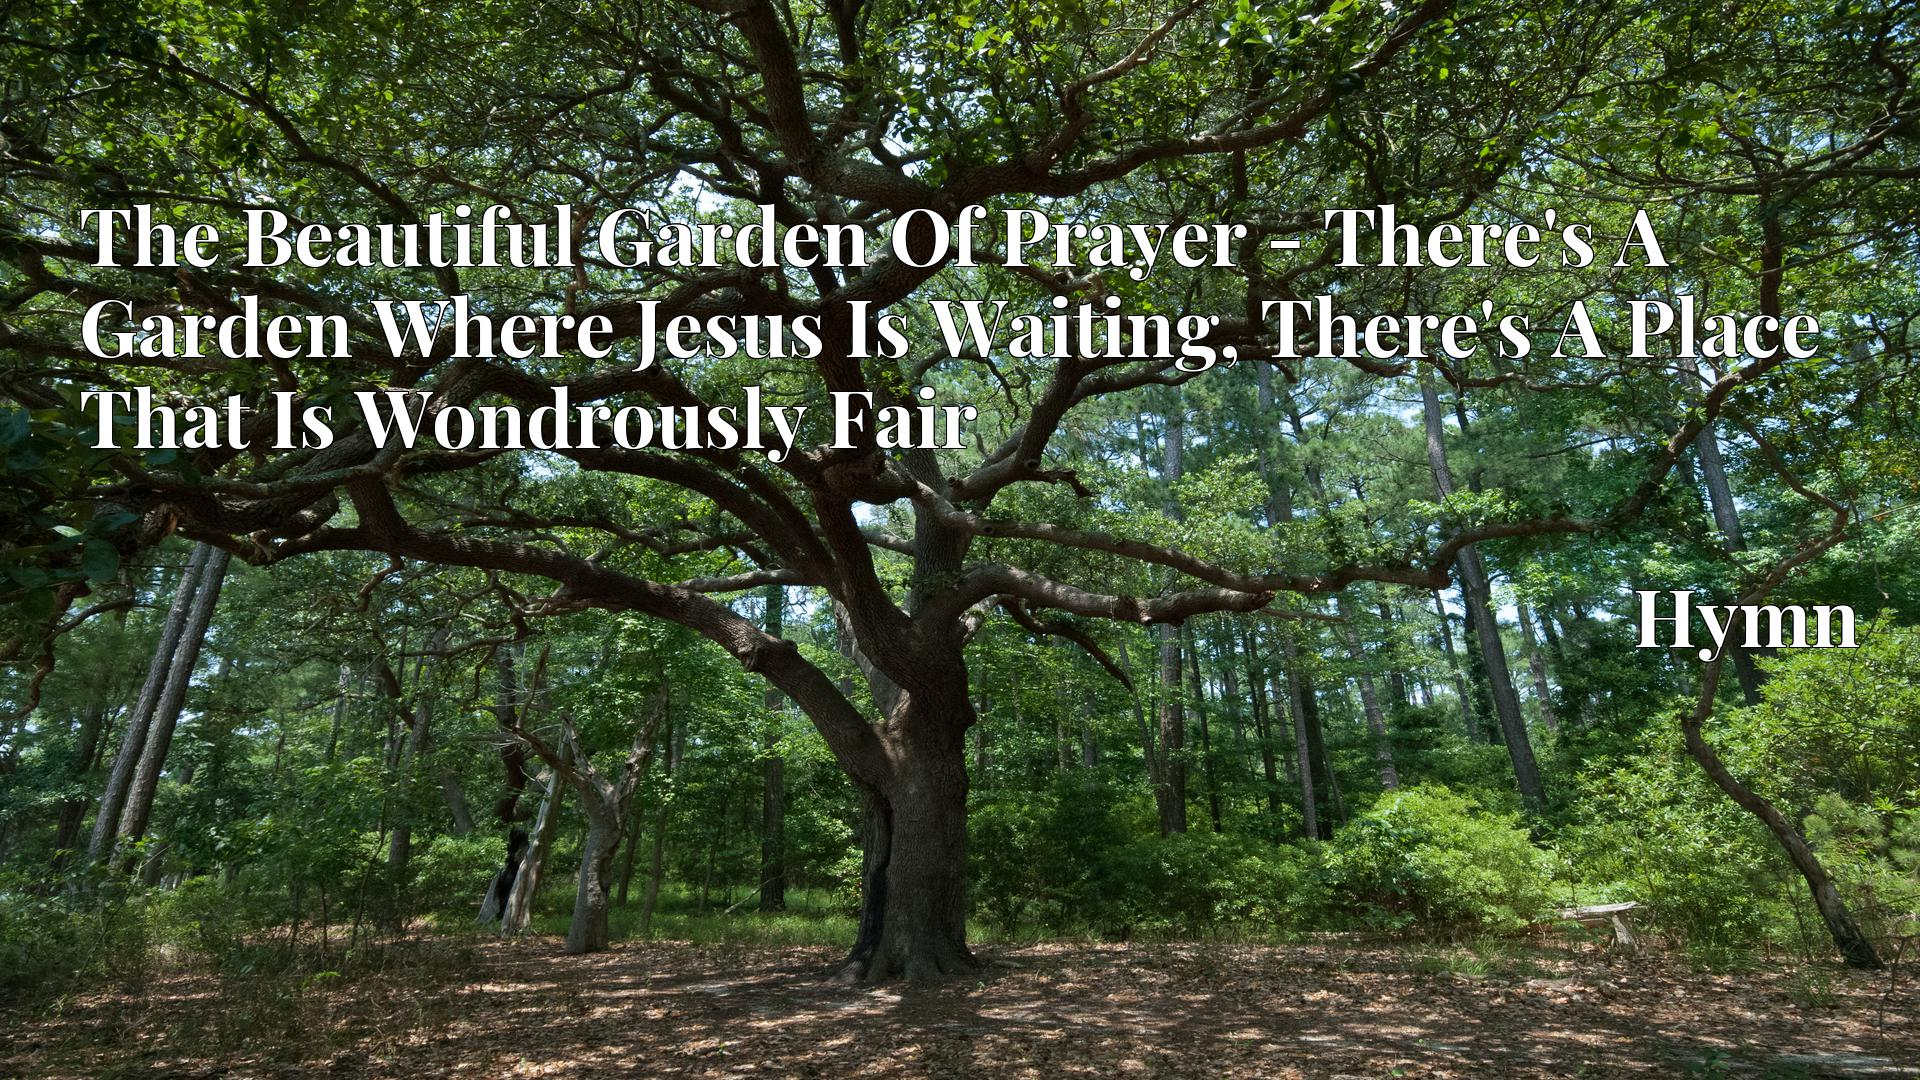 The Beautiful Garden Of Prayer - There's A Garden Where Jesus Is Waiting, There's A Place That Is Wondrously Fair Hymn